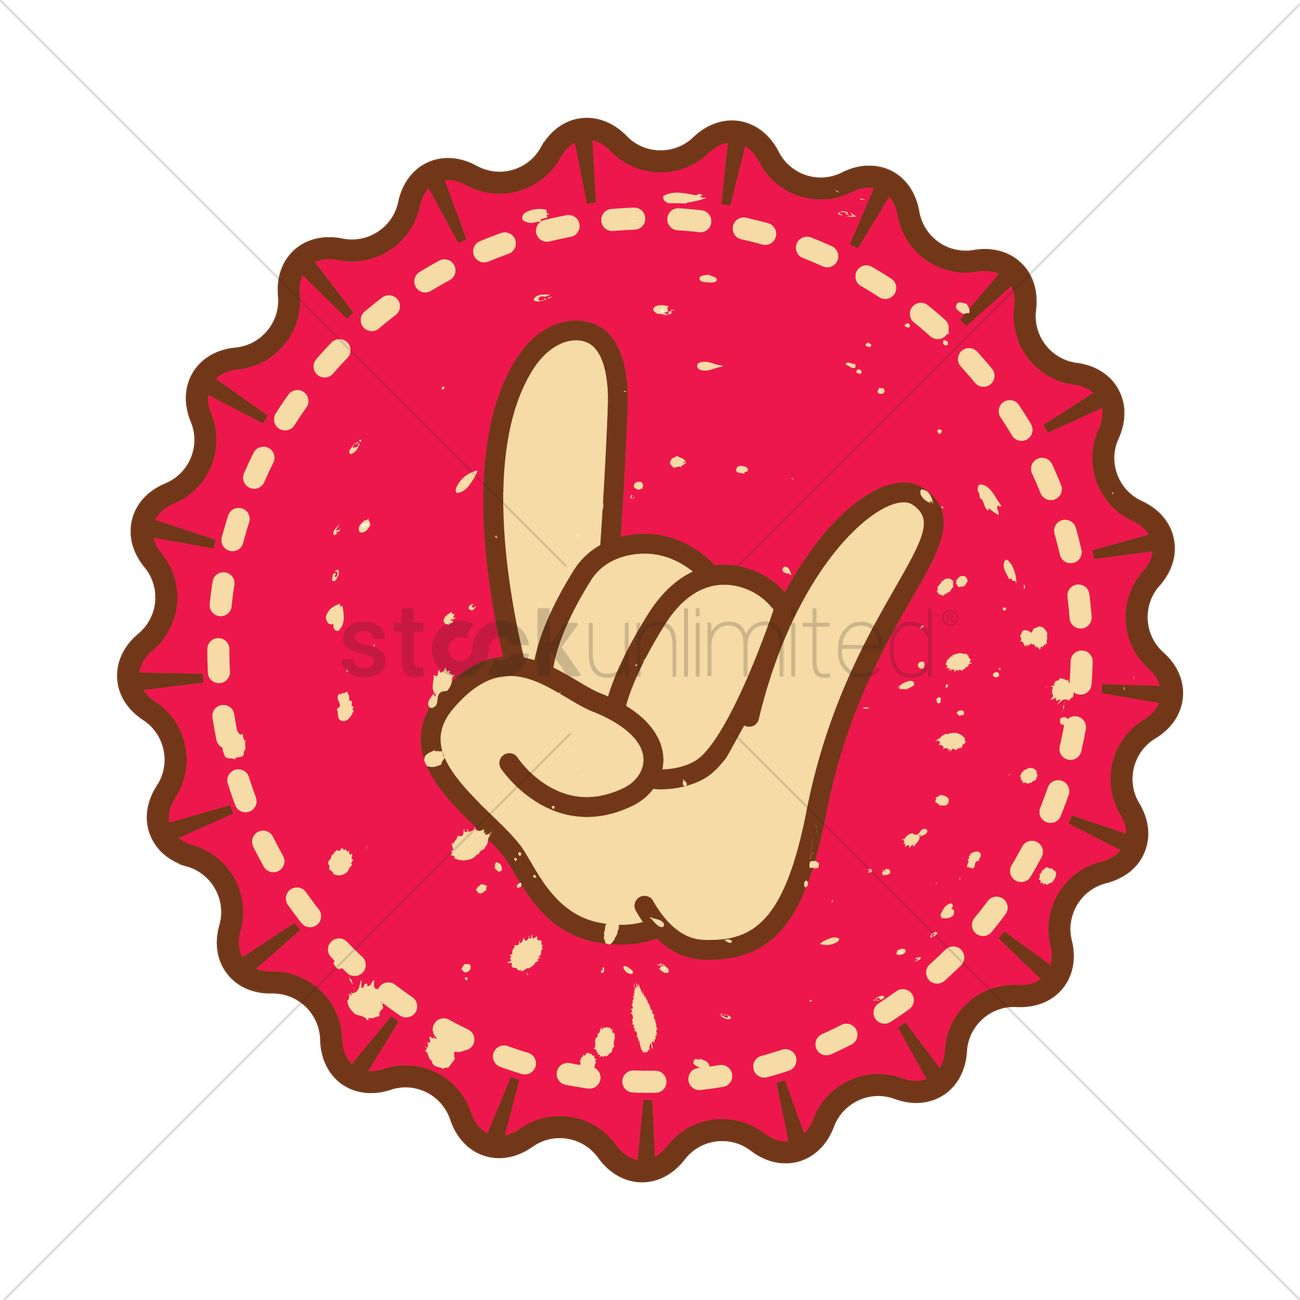 Hand Showing Rock Symbol Vector Image 1391672 Stockunlimited